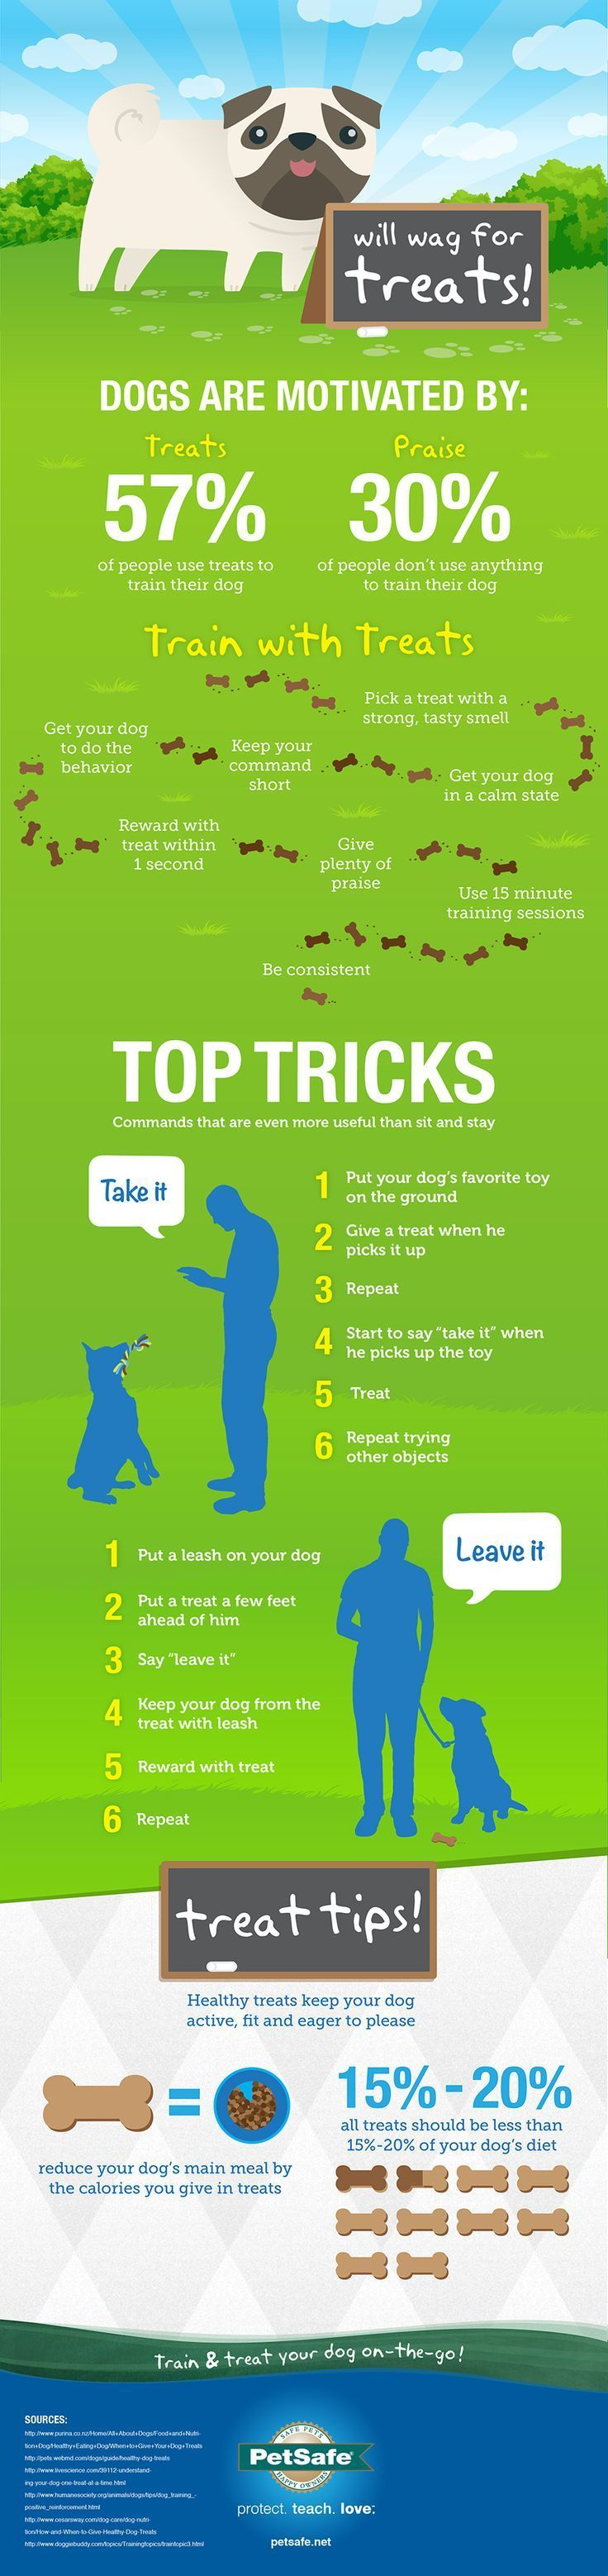 """Great dog training tips from PetSafe -- training with treats, praise; teaching """"Take It"""" and """"Leave It"""""""